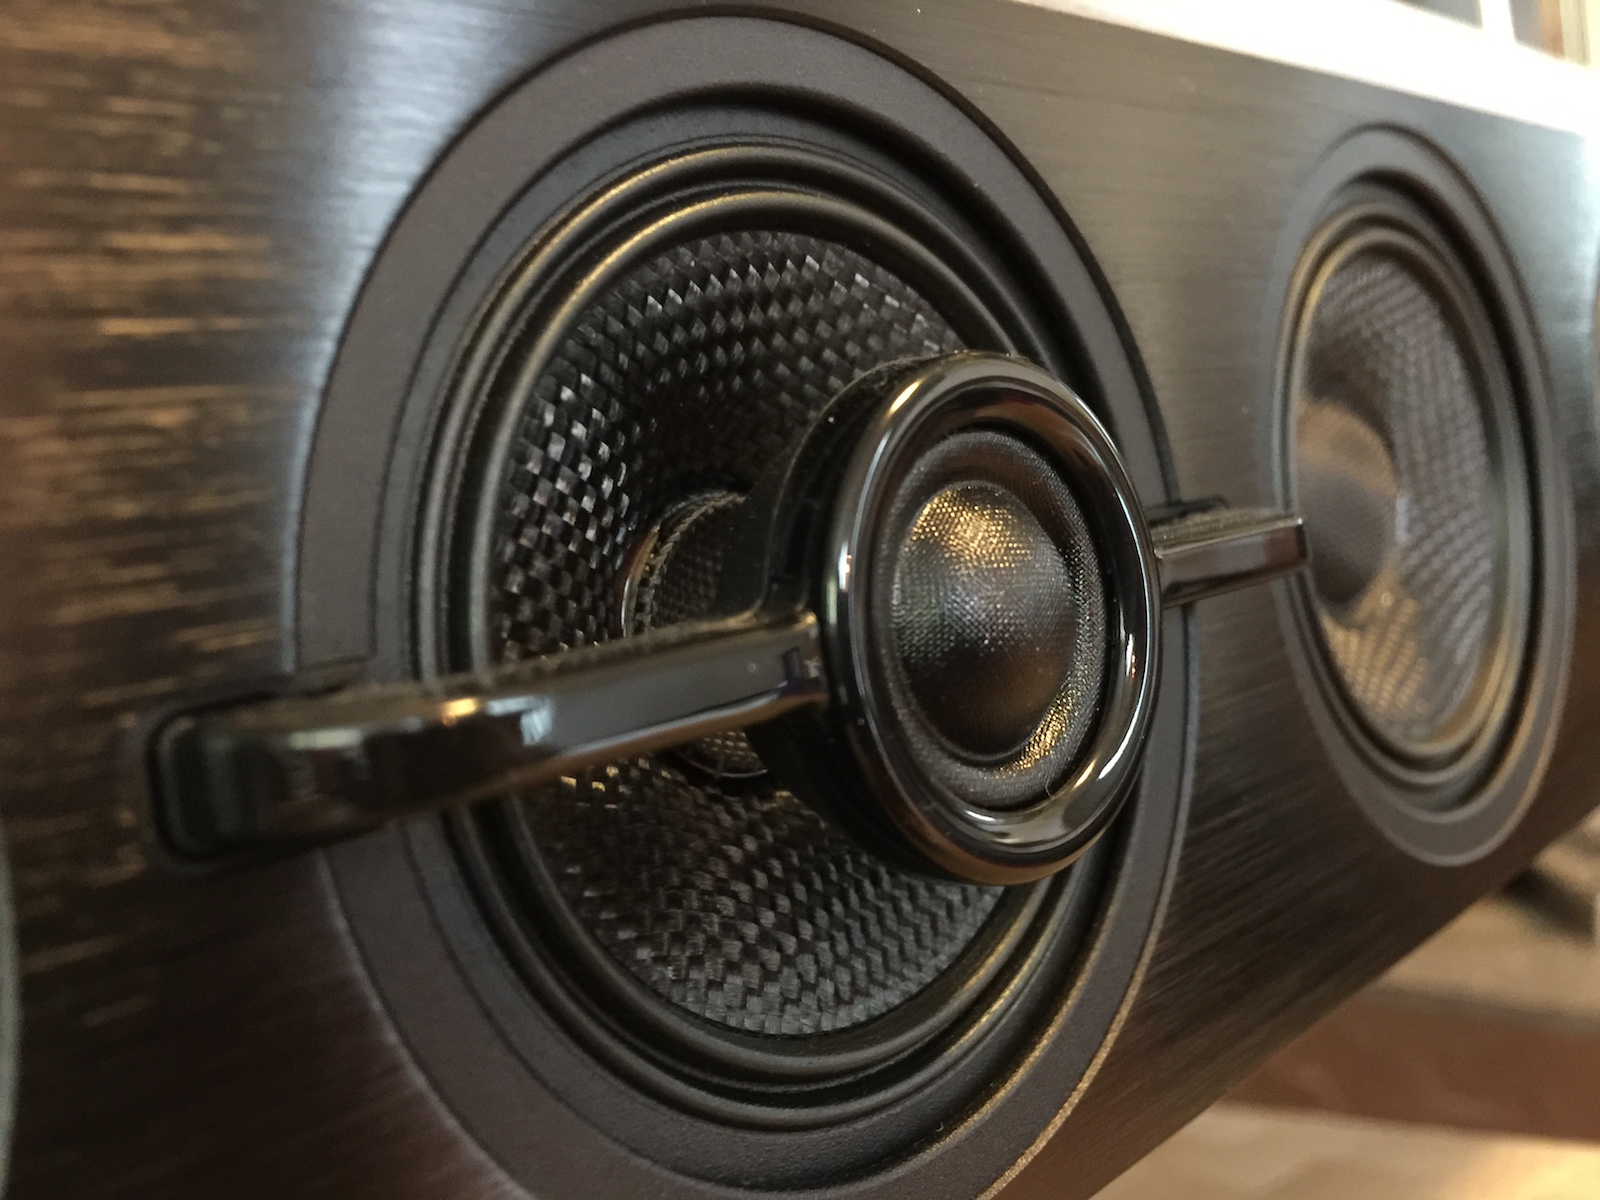 Sony HT-ST5000 sound bar and subwoofer review | Best Buy Blog